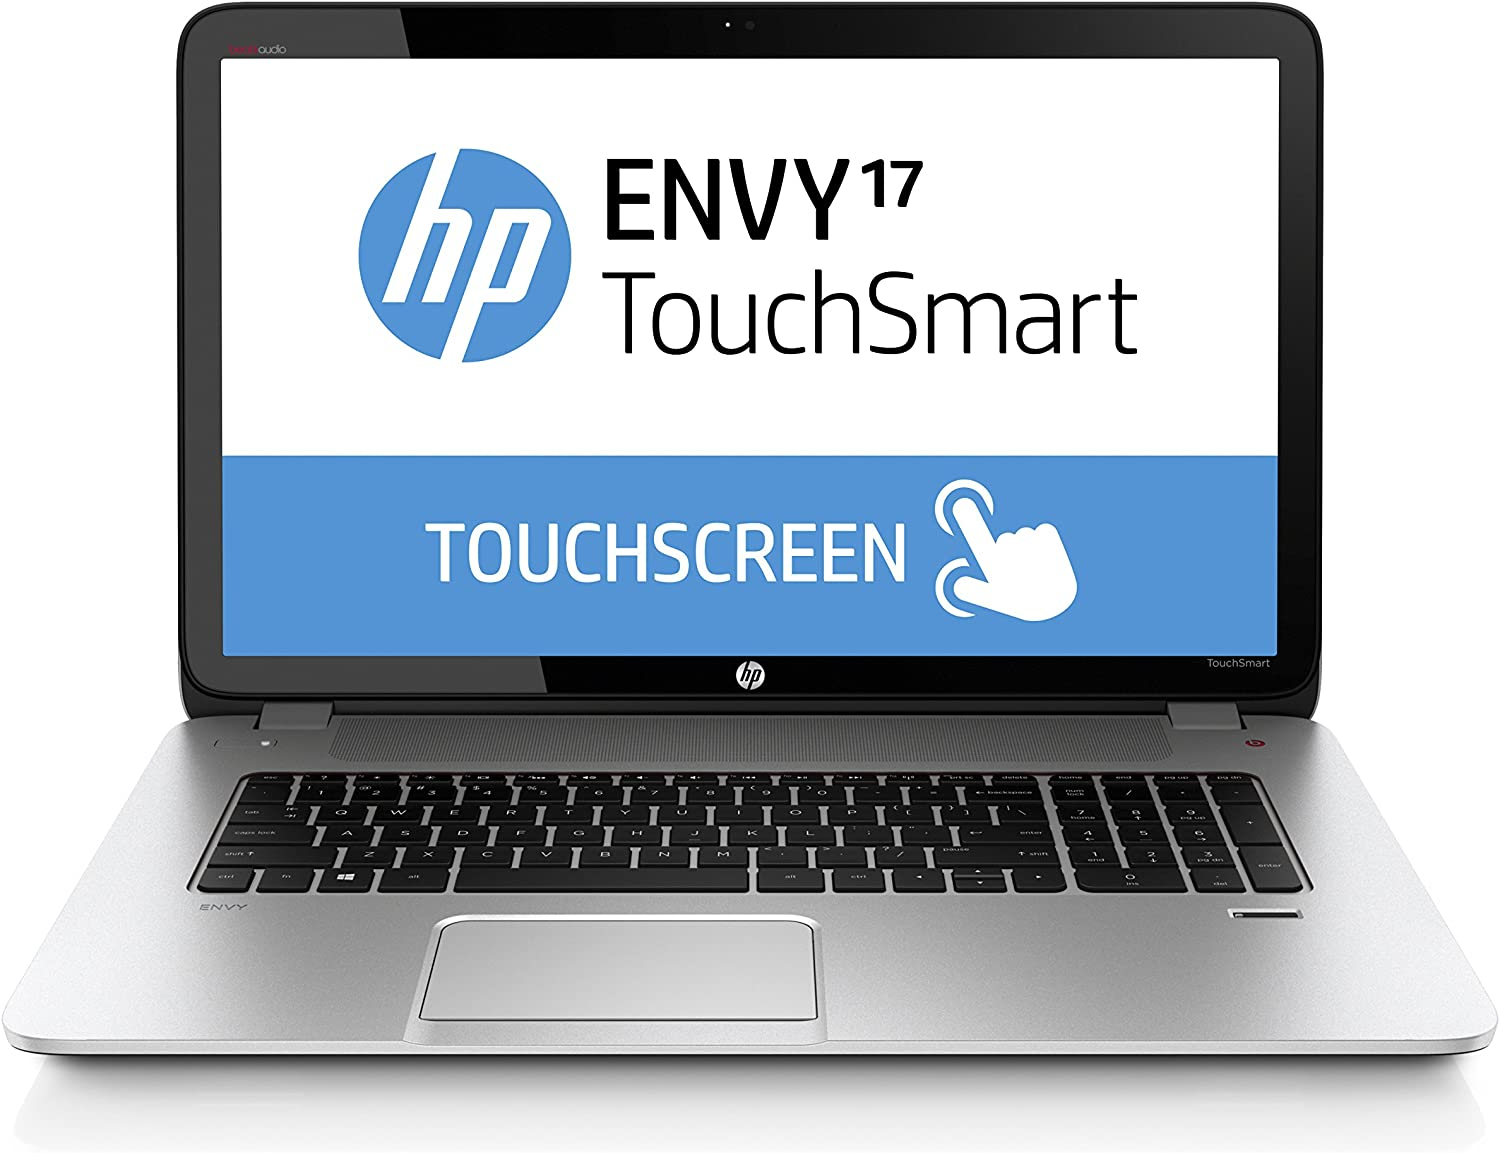 HP Envy 17.3 Inch Laptop (Intel Core i7, 12 GB, 1 TB Hybrid Drive, Silver)